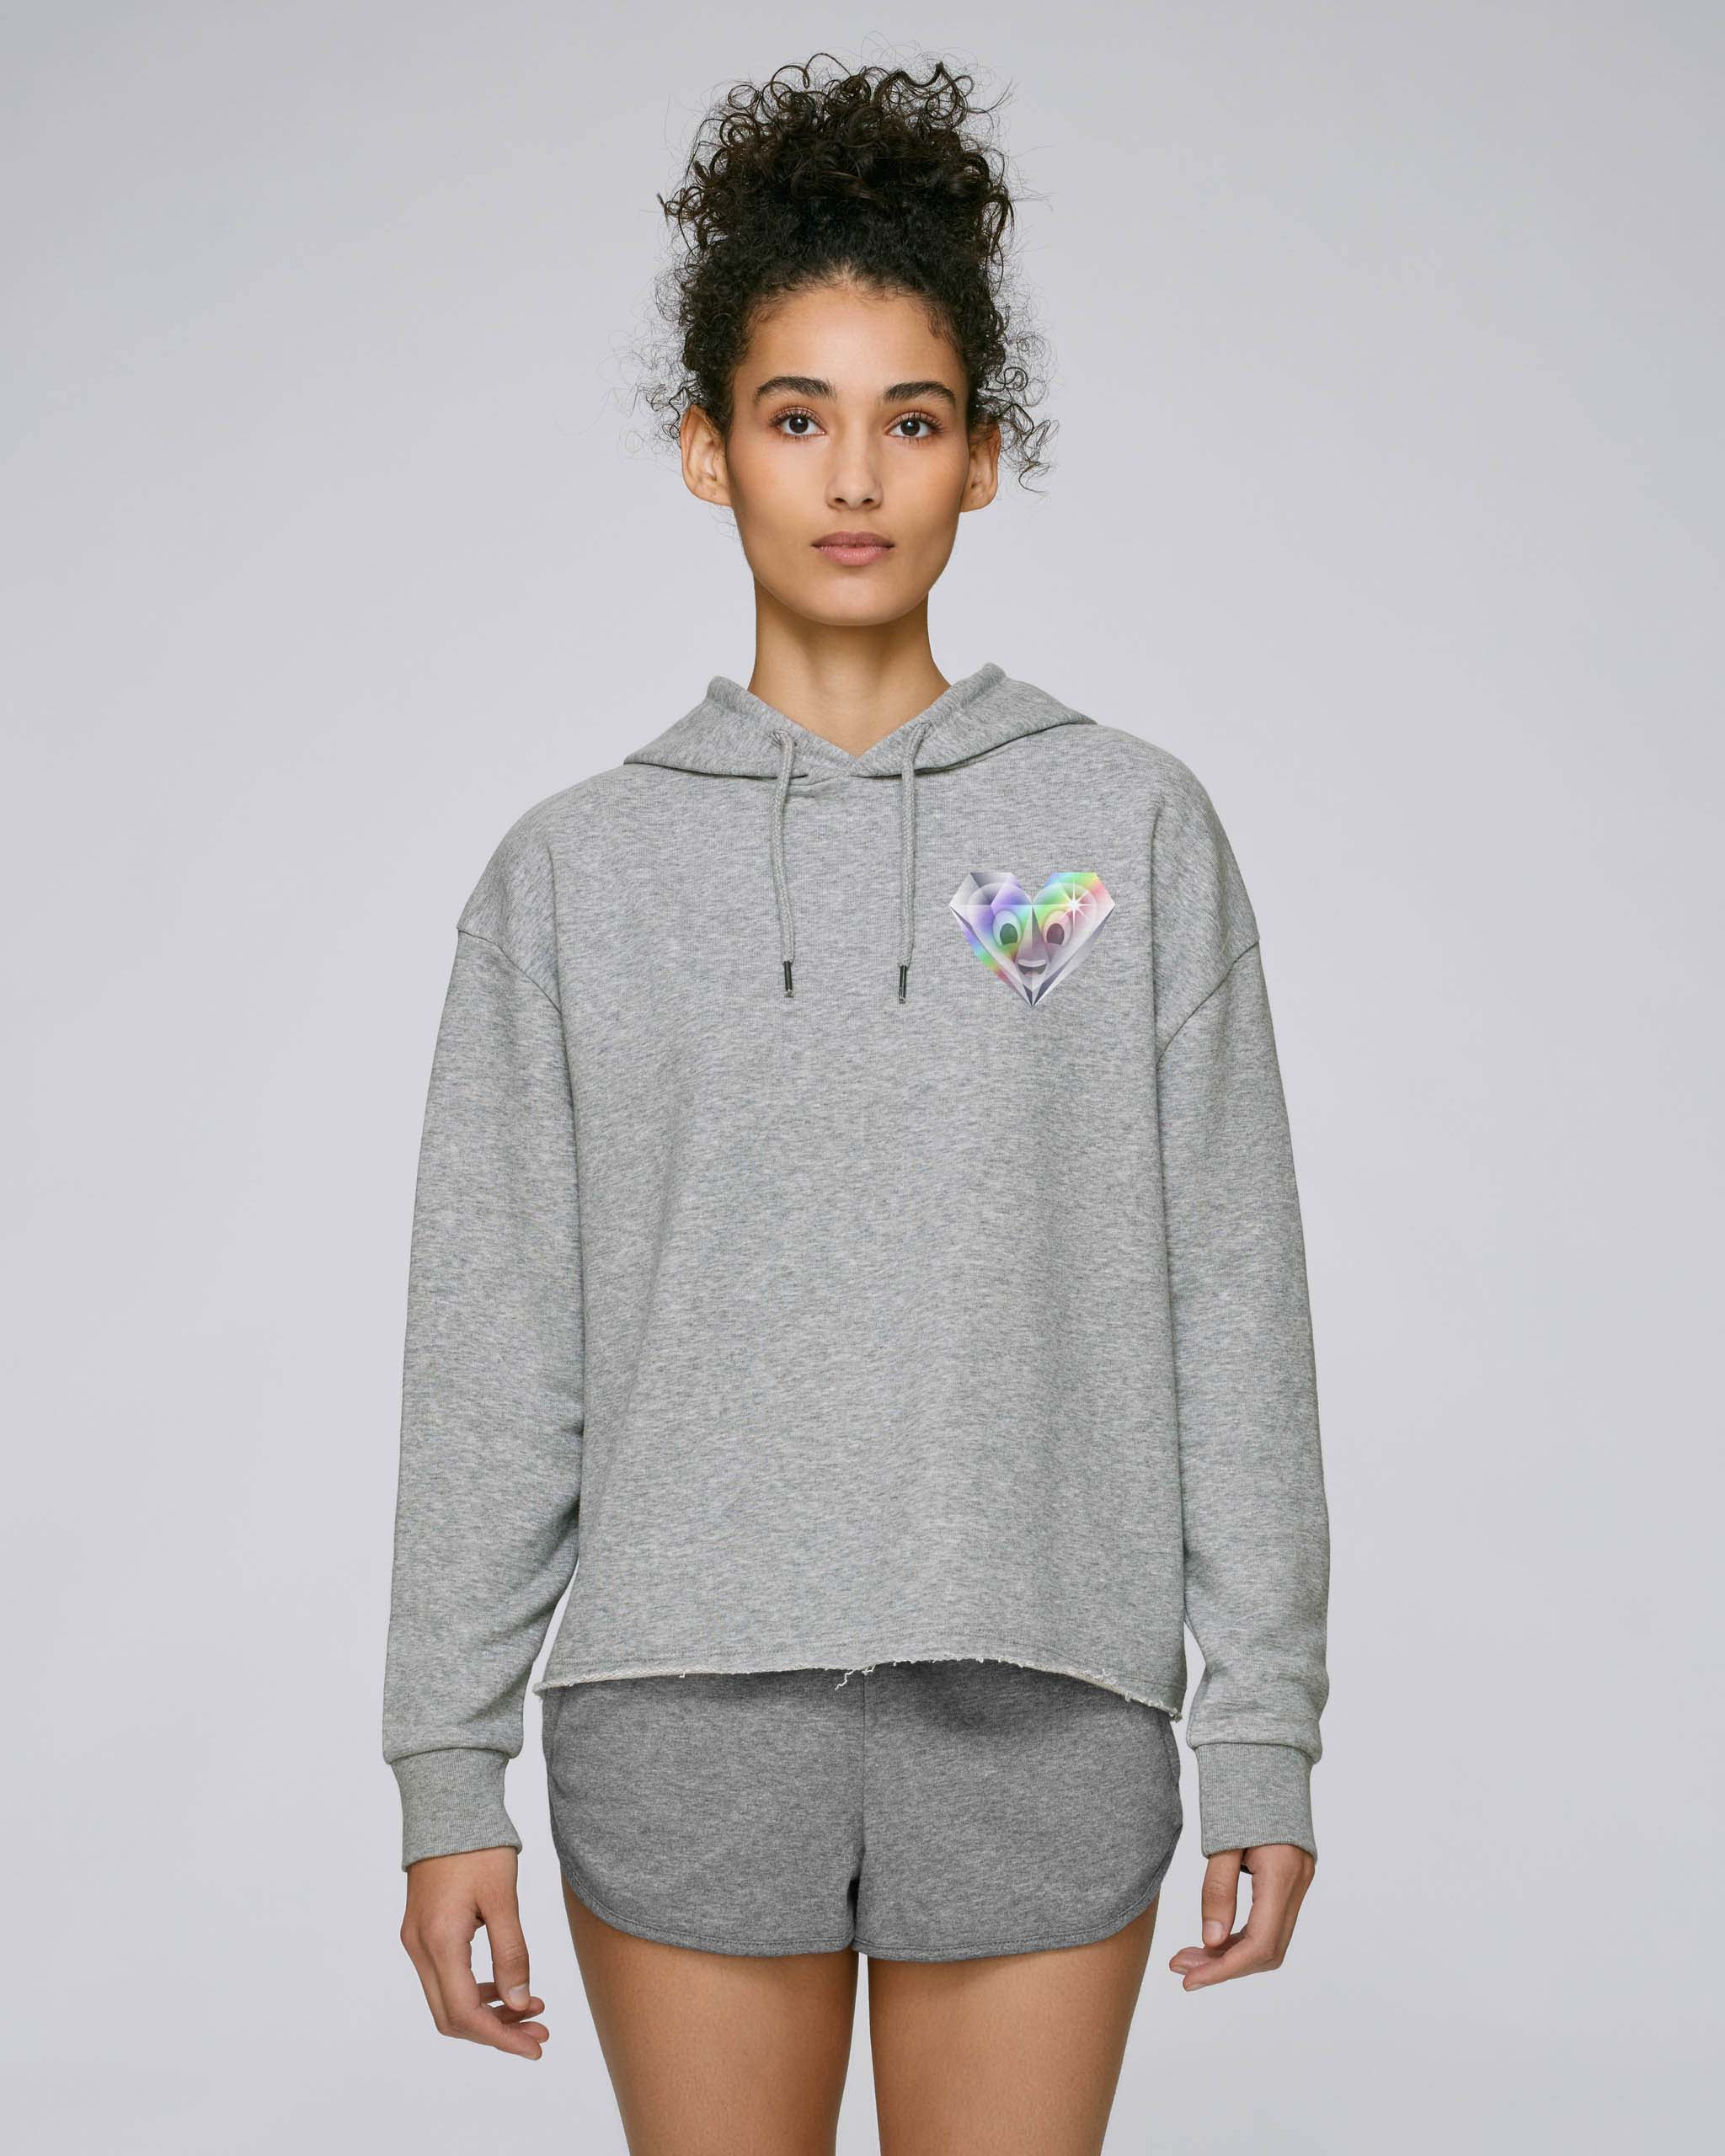 Sweat-Shirt Bio gris Femme - Diamond sweat